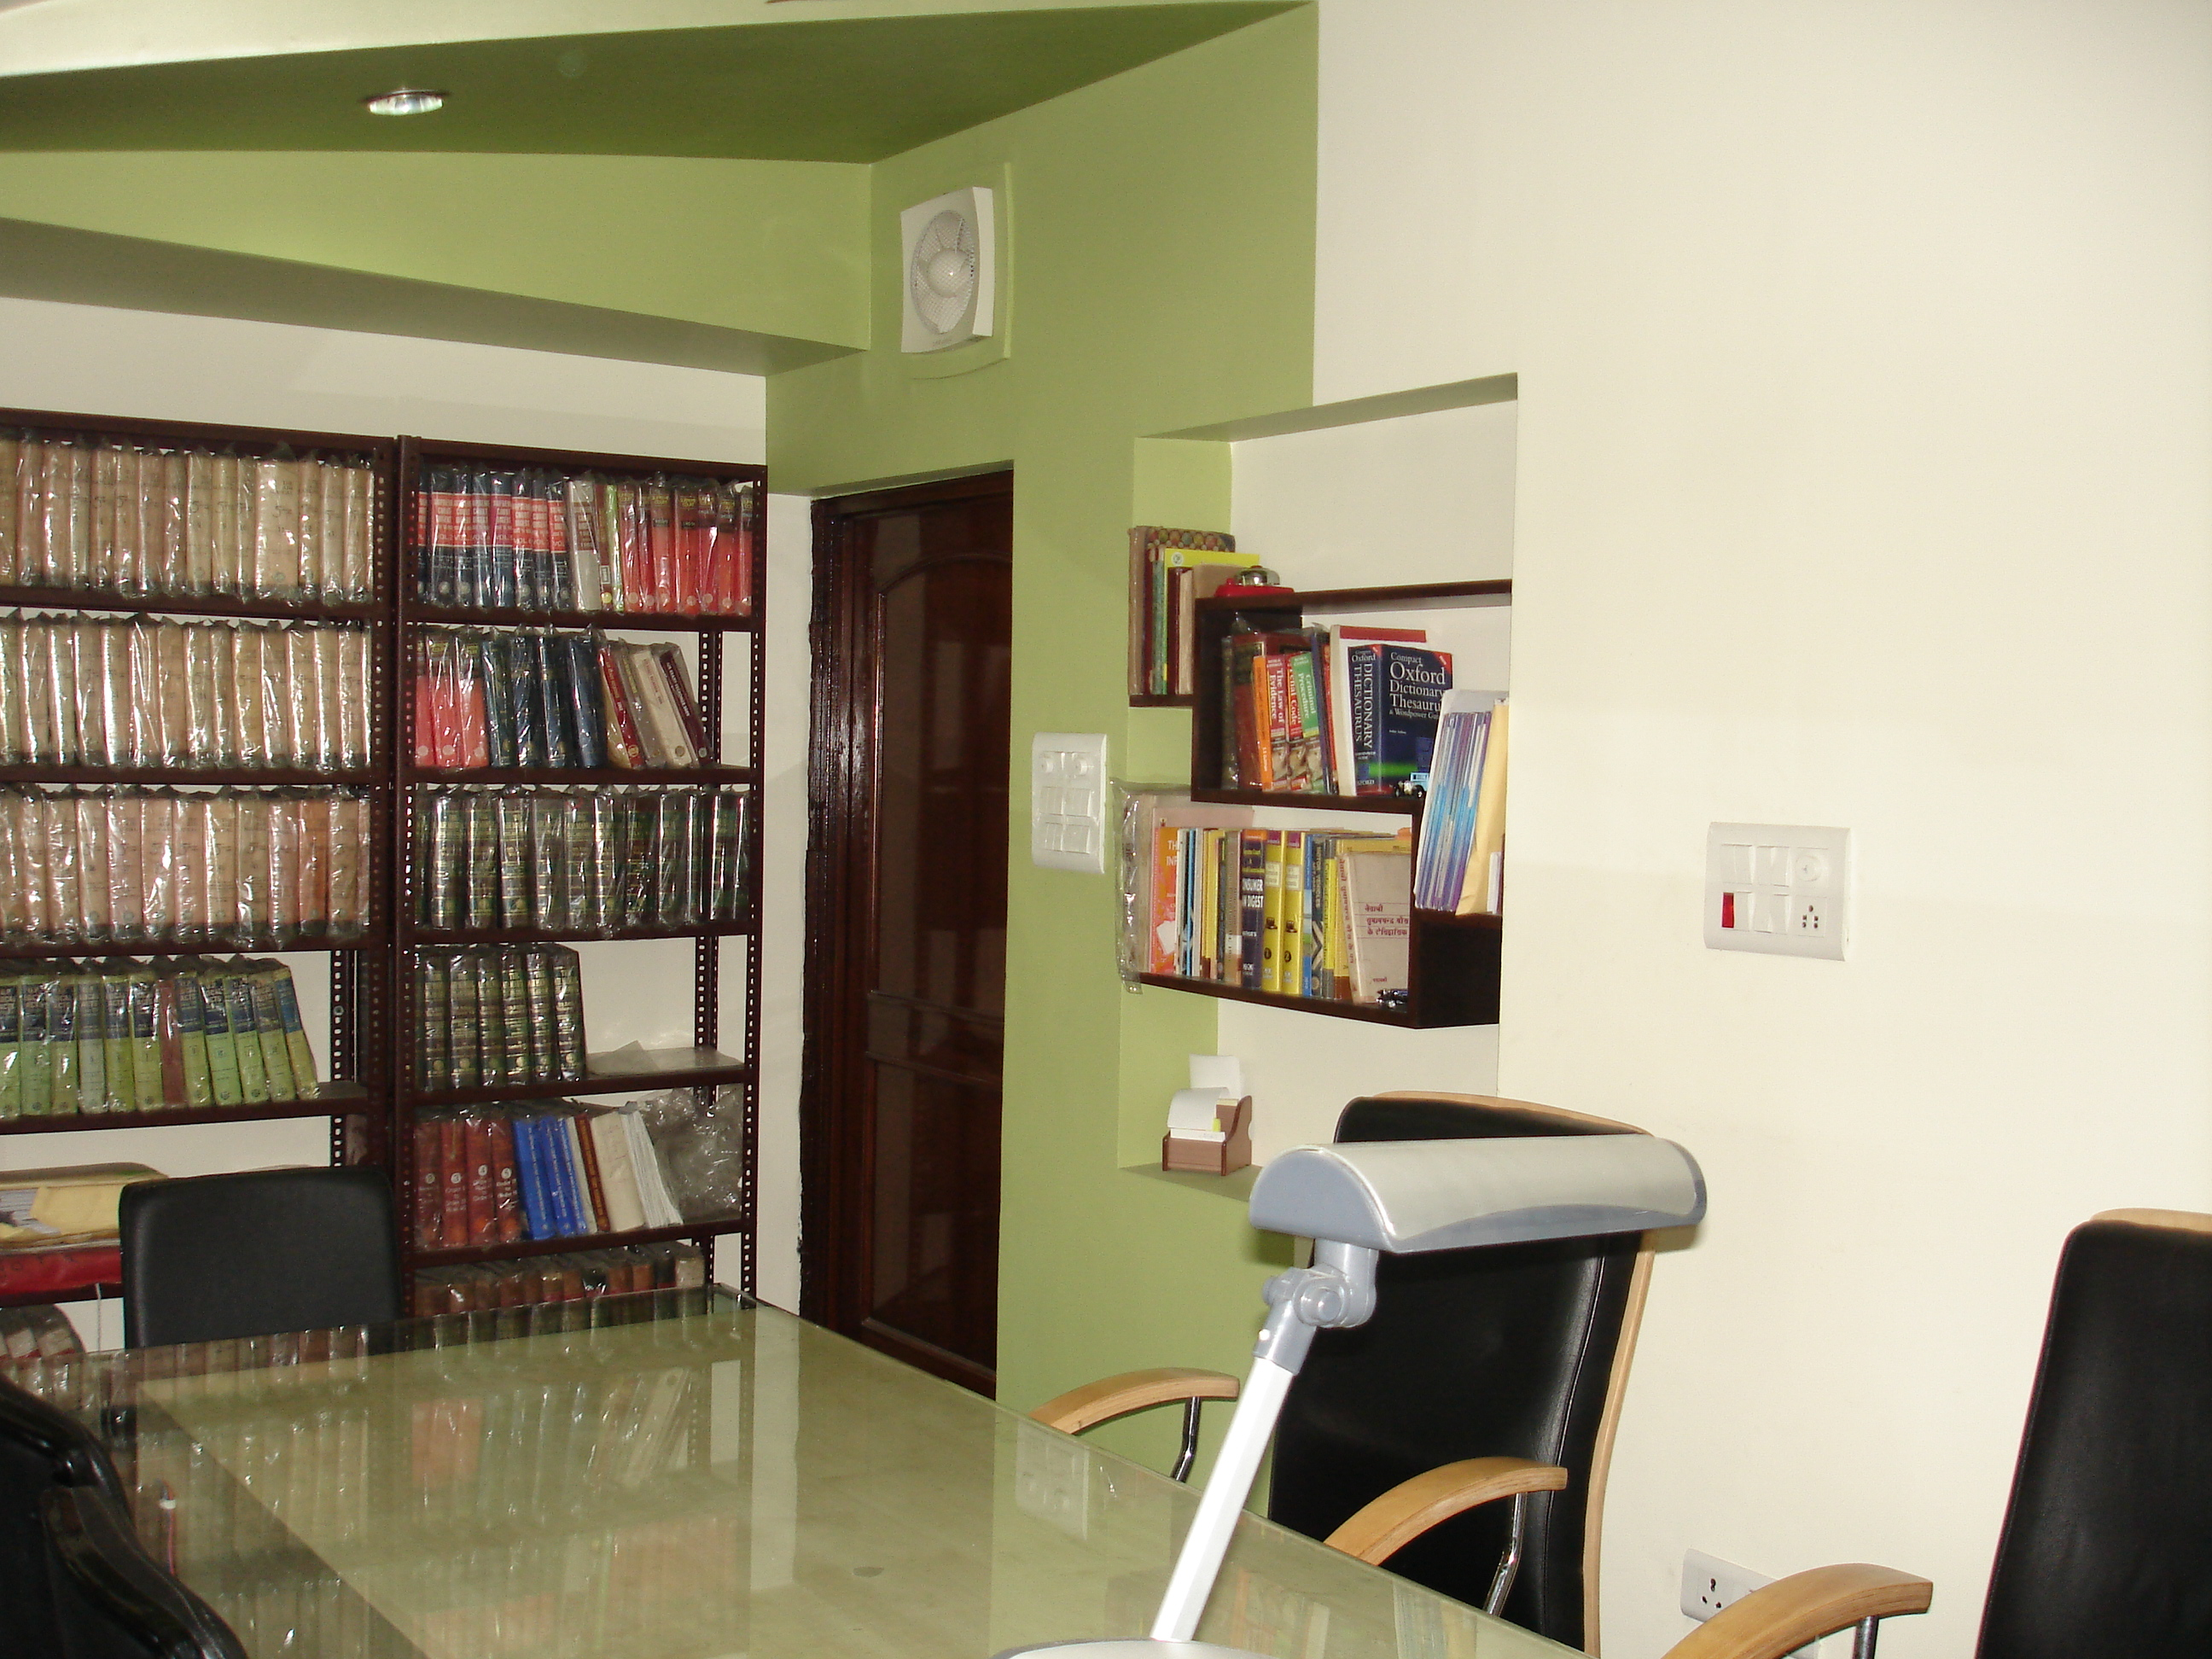 Advocate office by udita bansal agrawal at coroflot com .